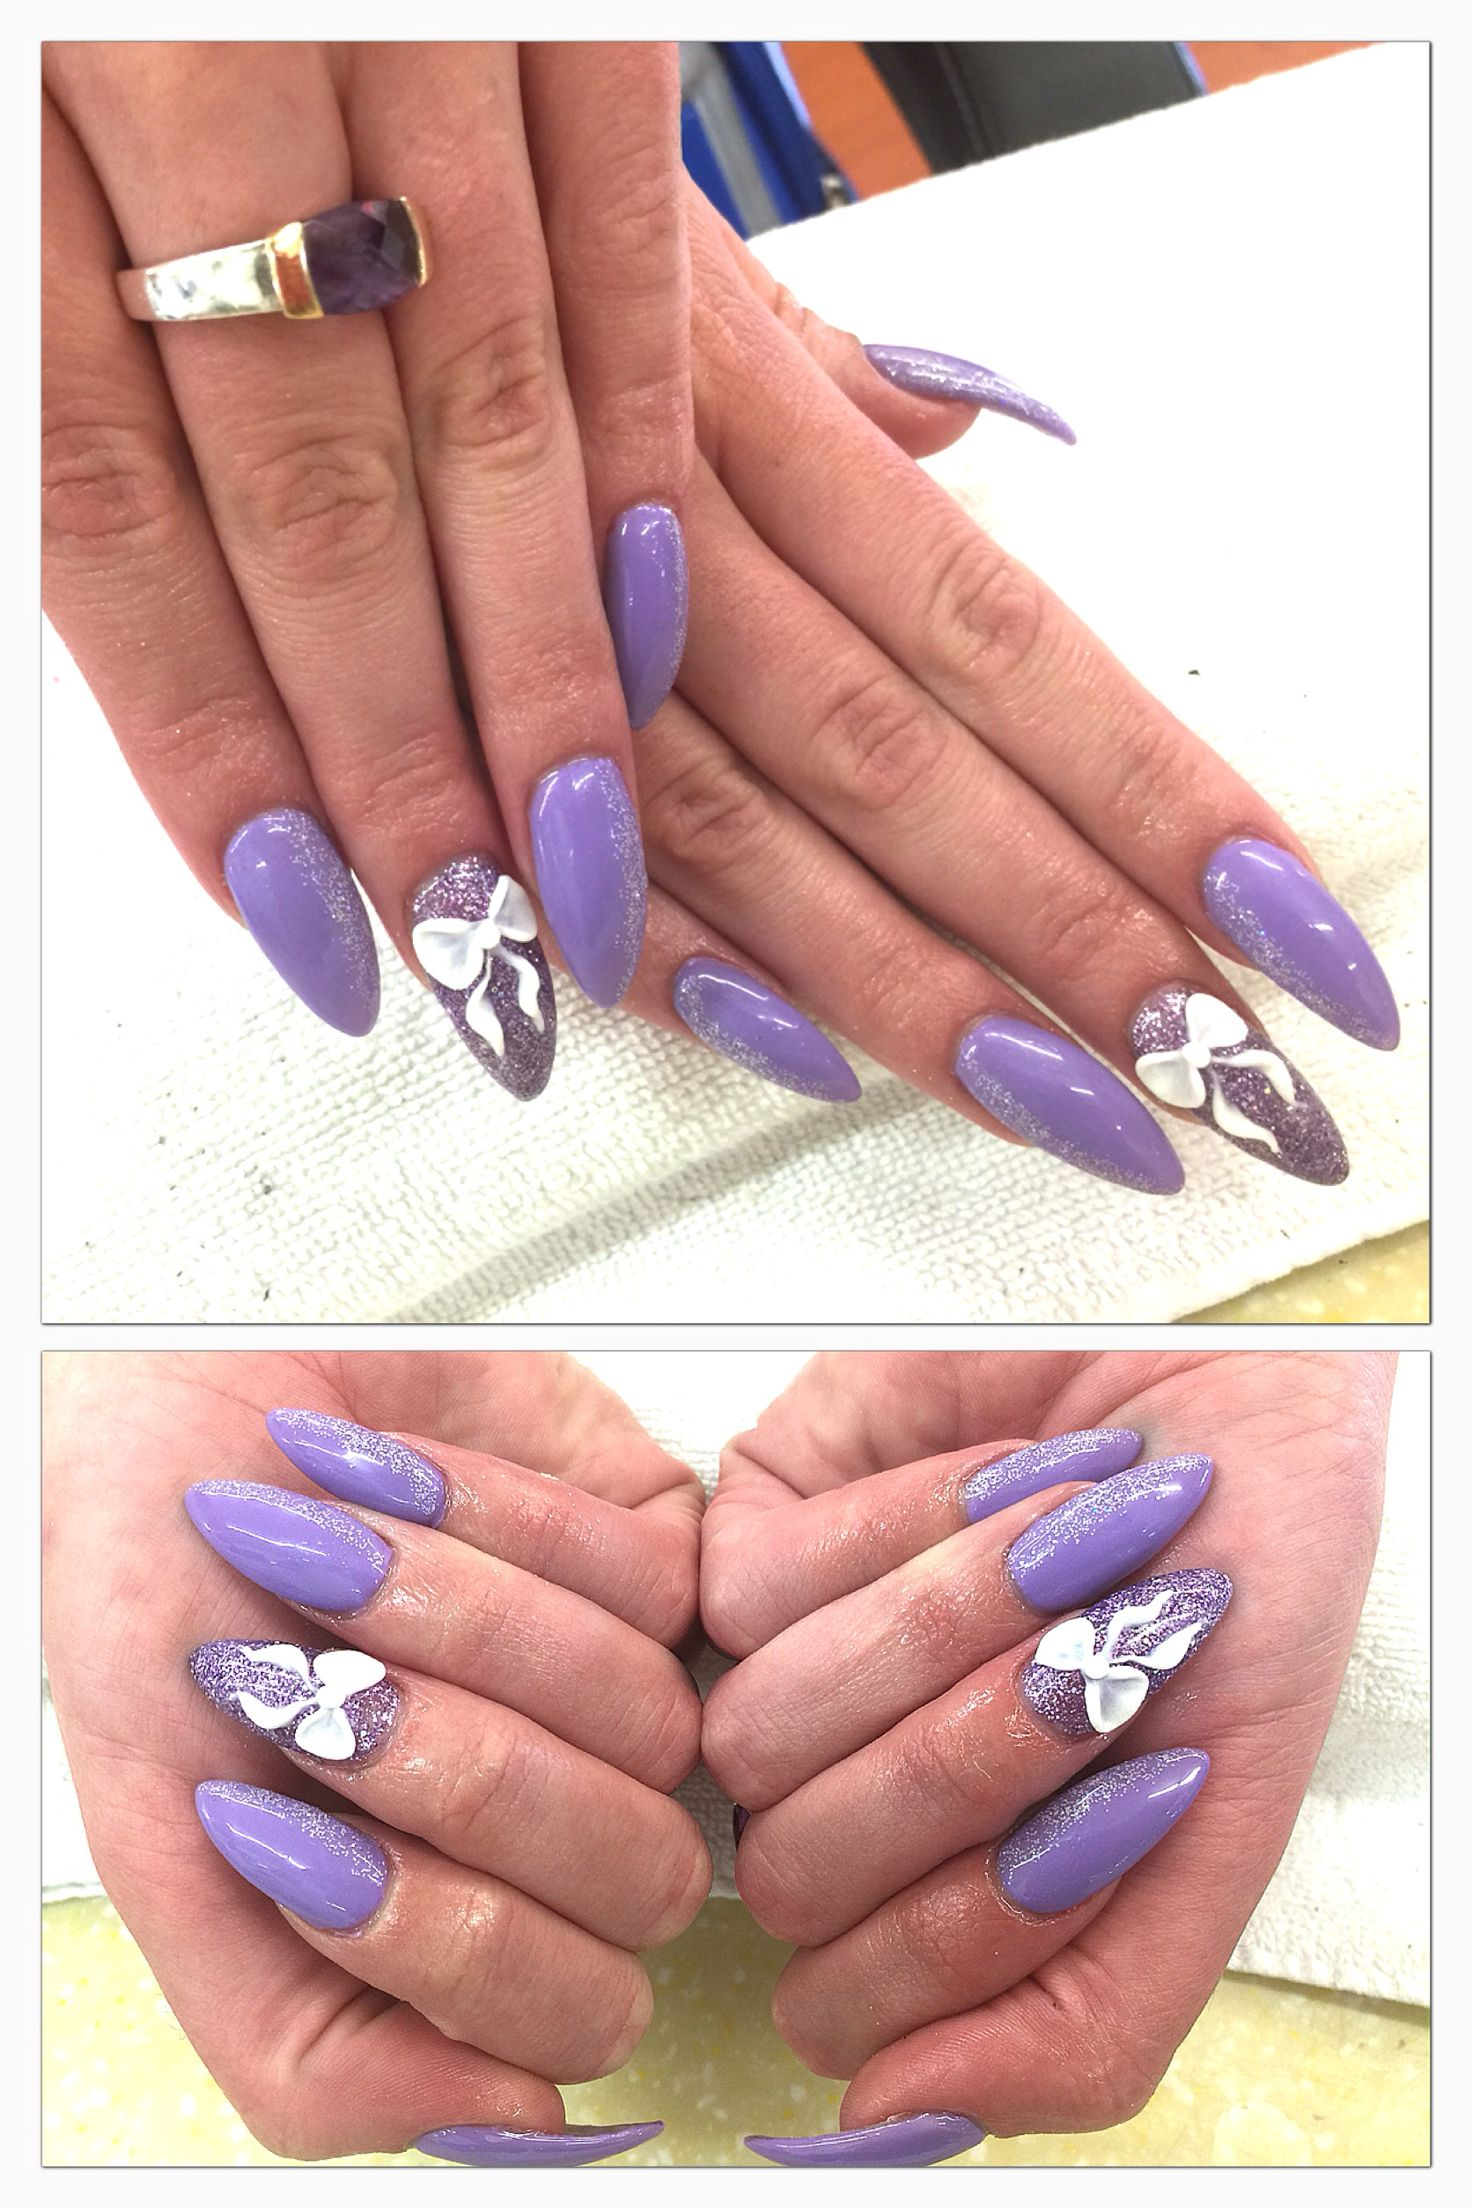 Color: Lavender gel with light glitter accents and deep glitter on ...